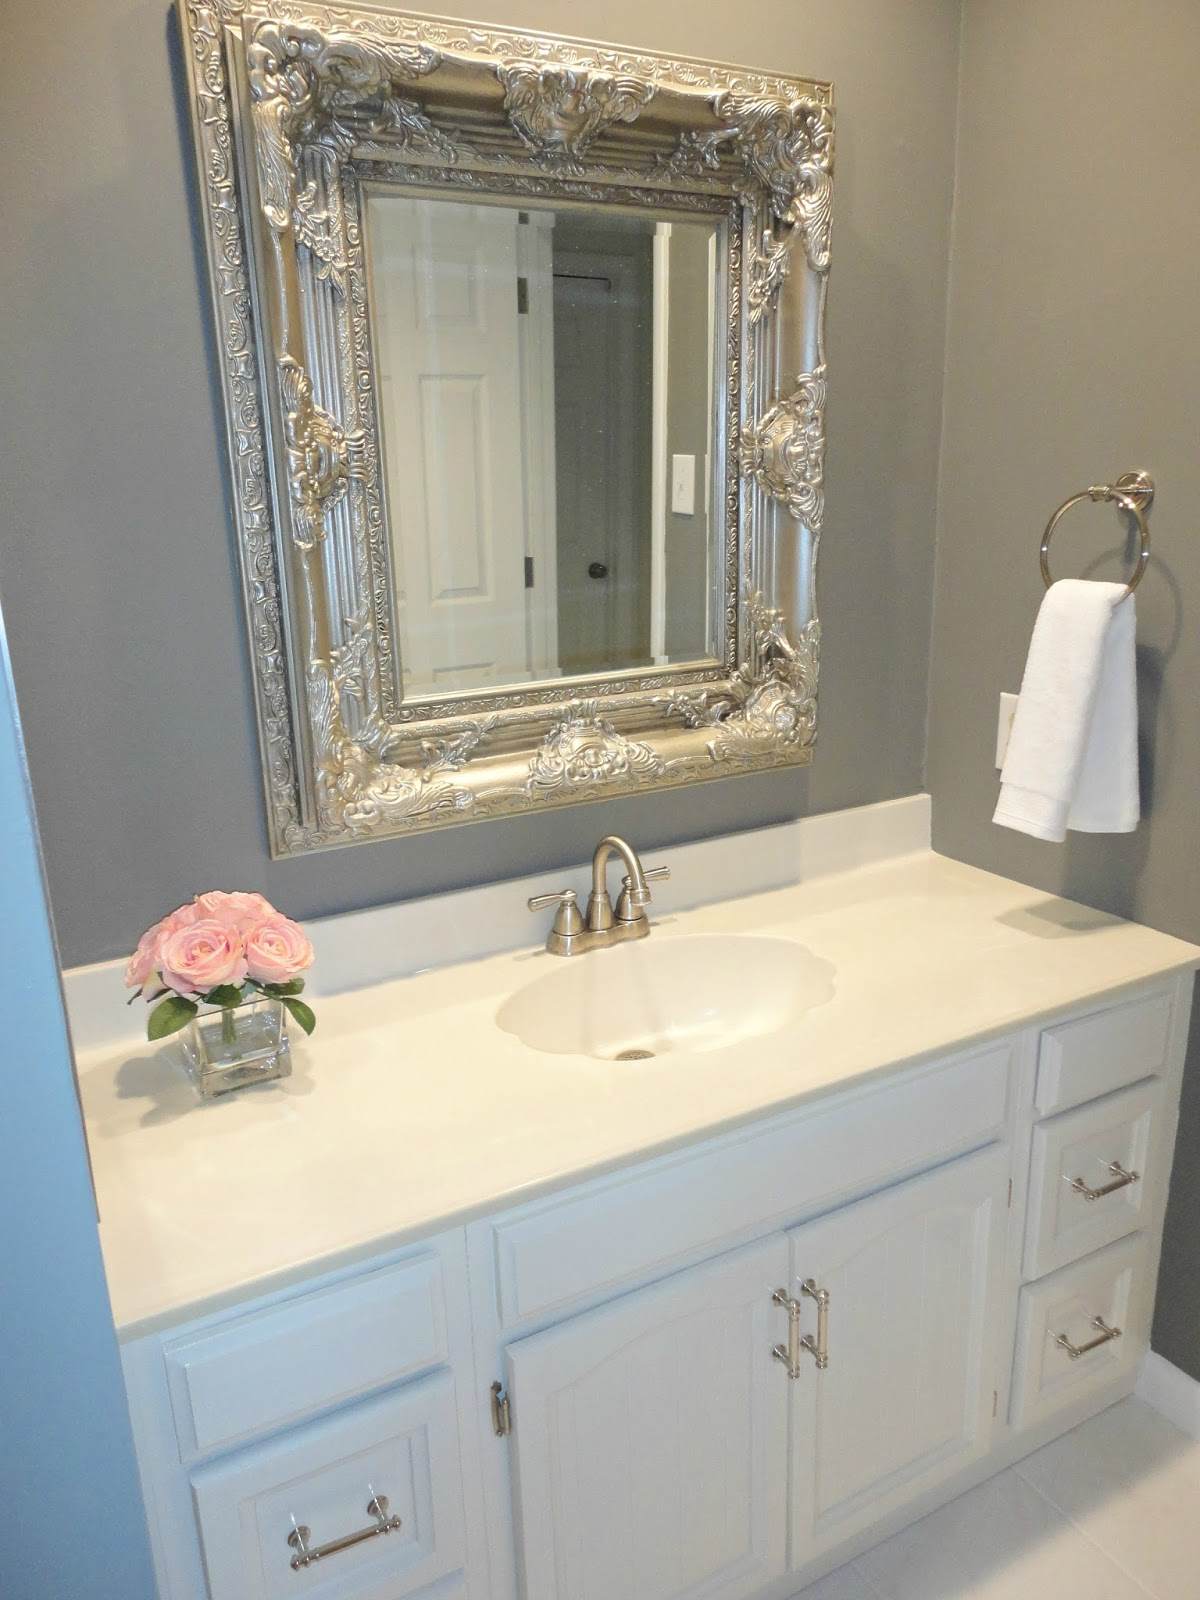 5 Easy Inexpensive Diy Bathroom Remodeling Ideas This Old Famhouse